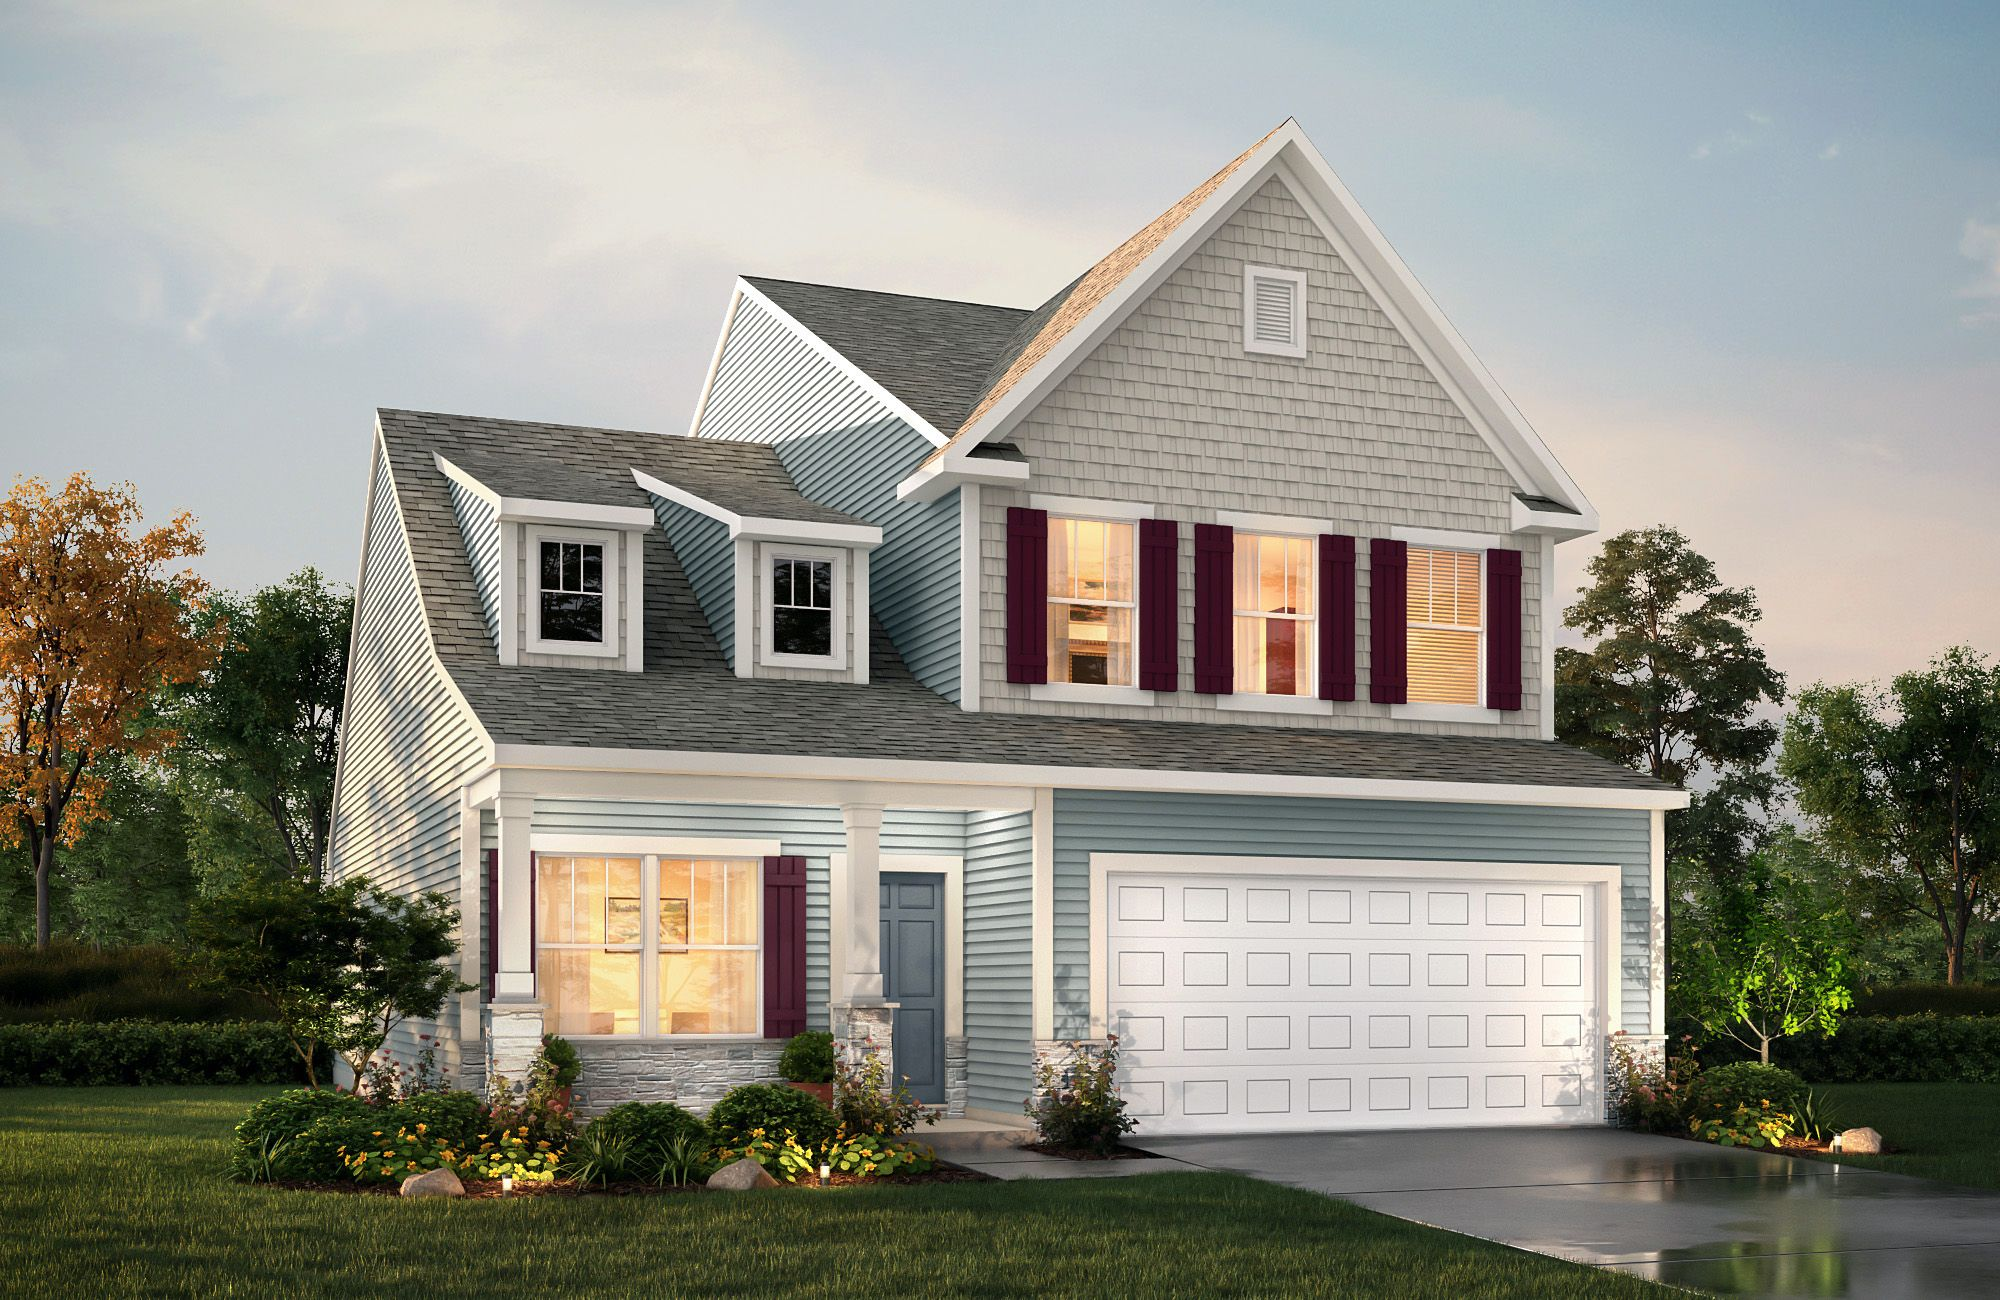 Tate E B2p In 2020 True Homes House Elevation House Styles